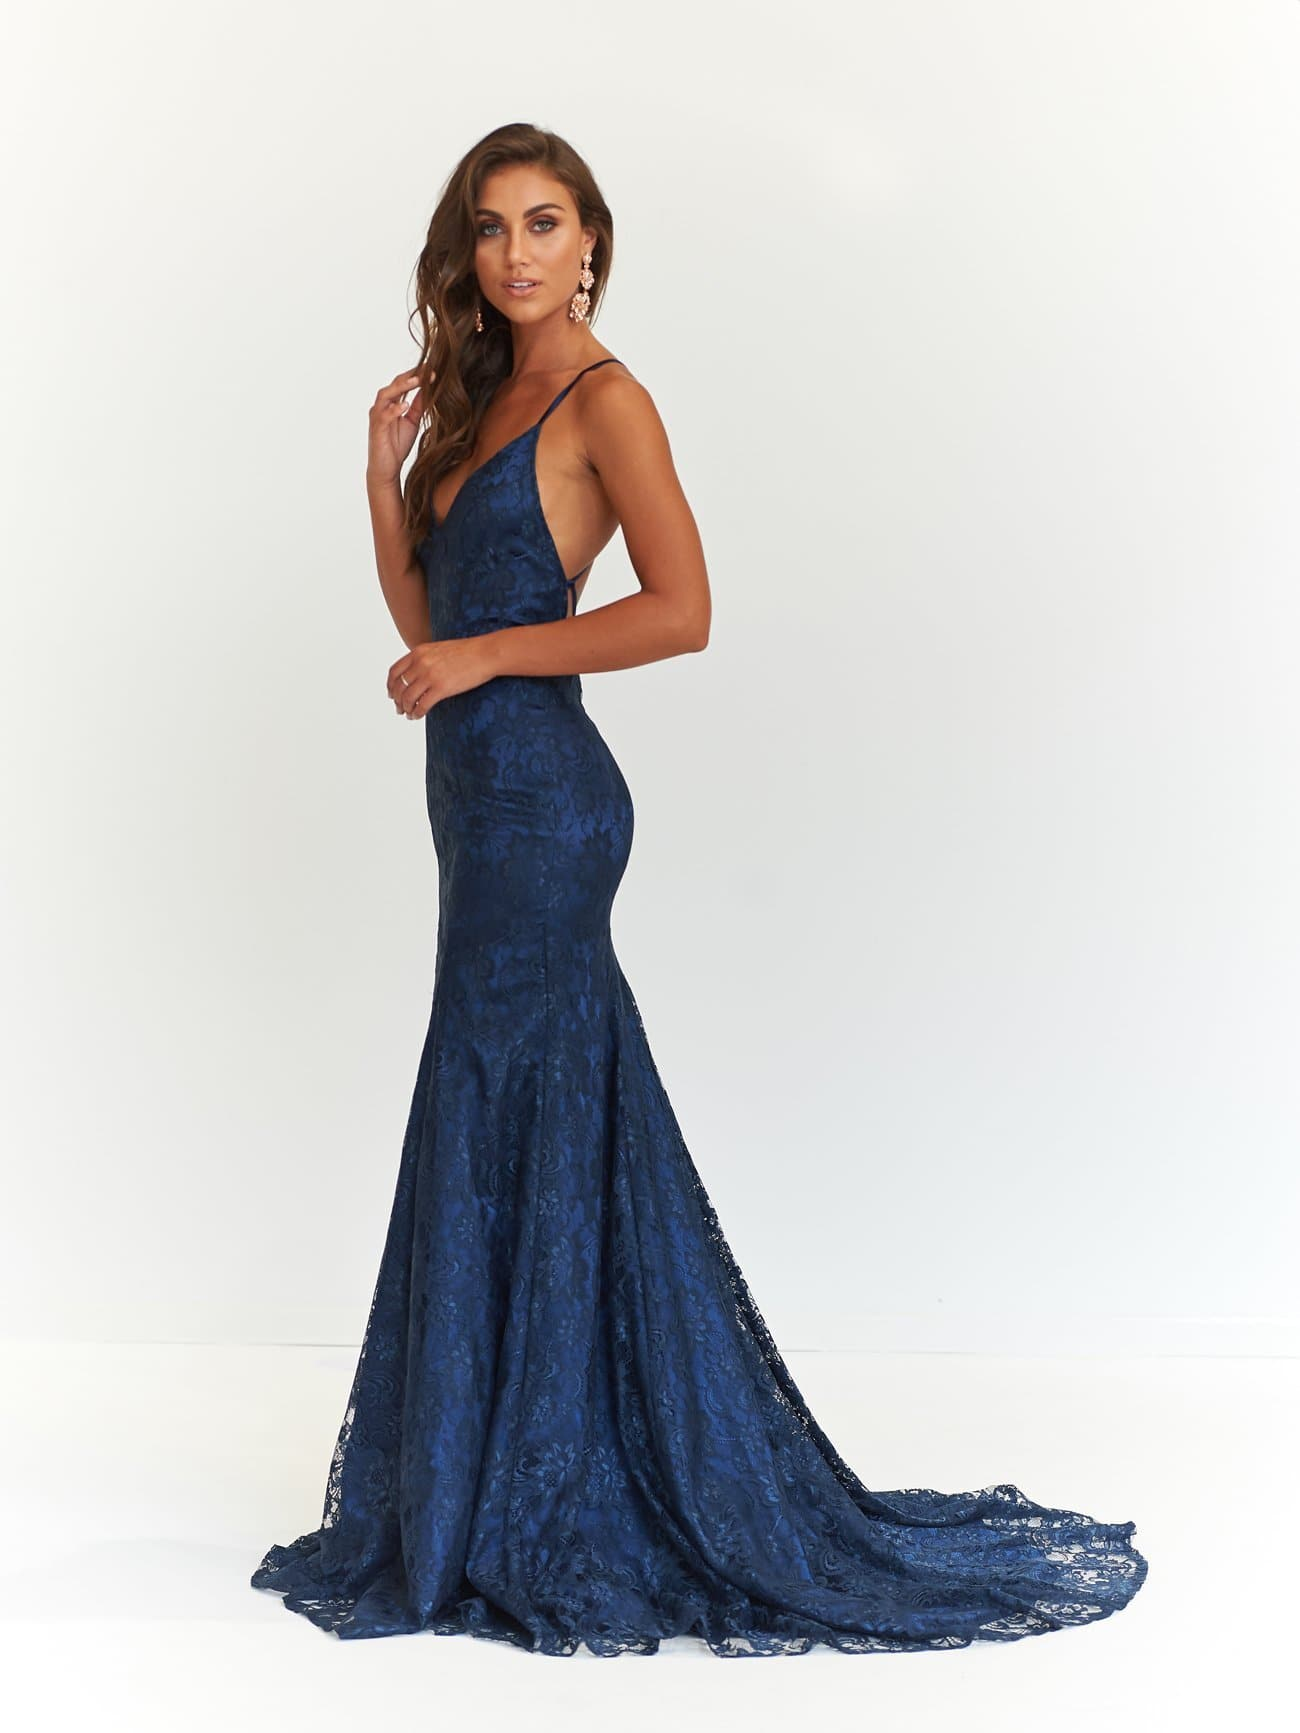 A&N Luxe Aisha Gown - Navy Lace Up Mermaid Gown with Low Back